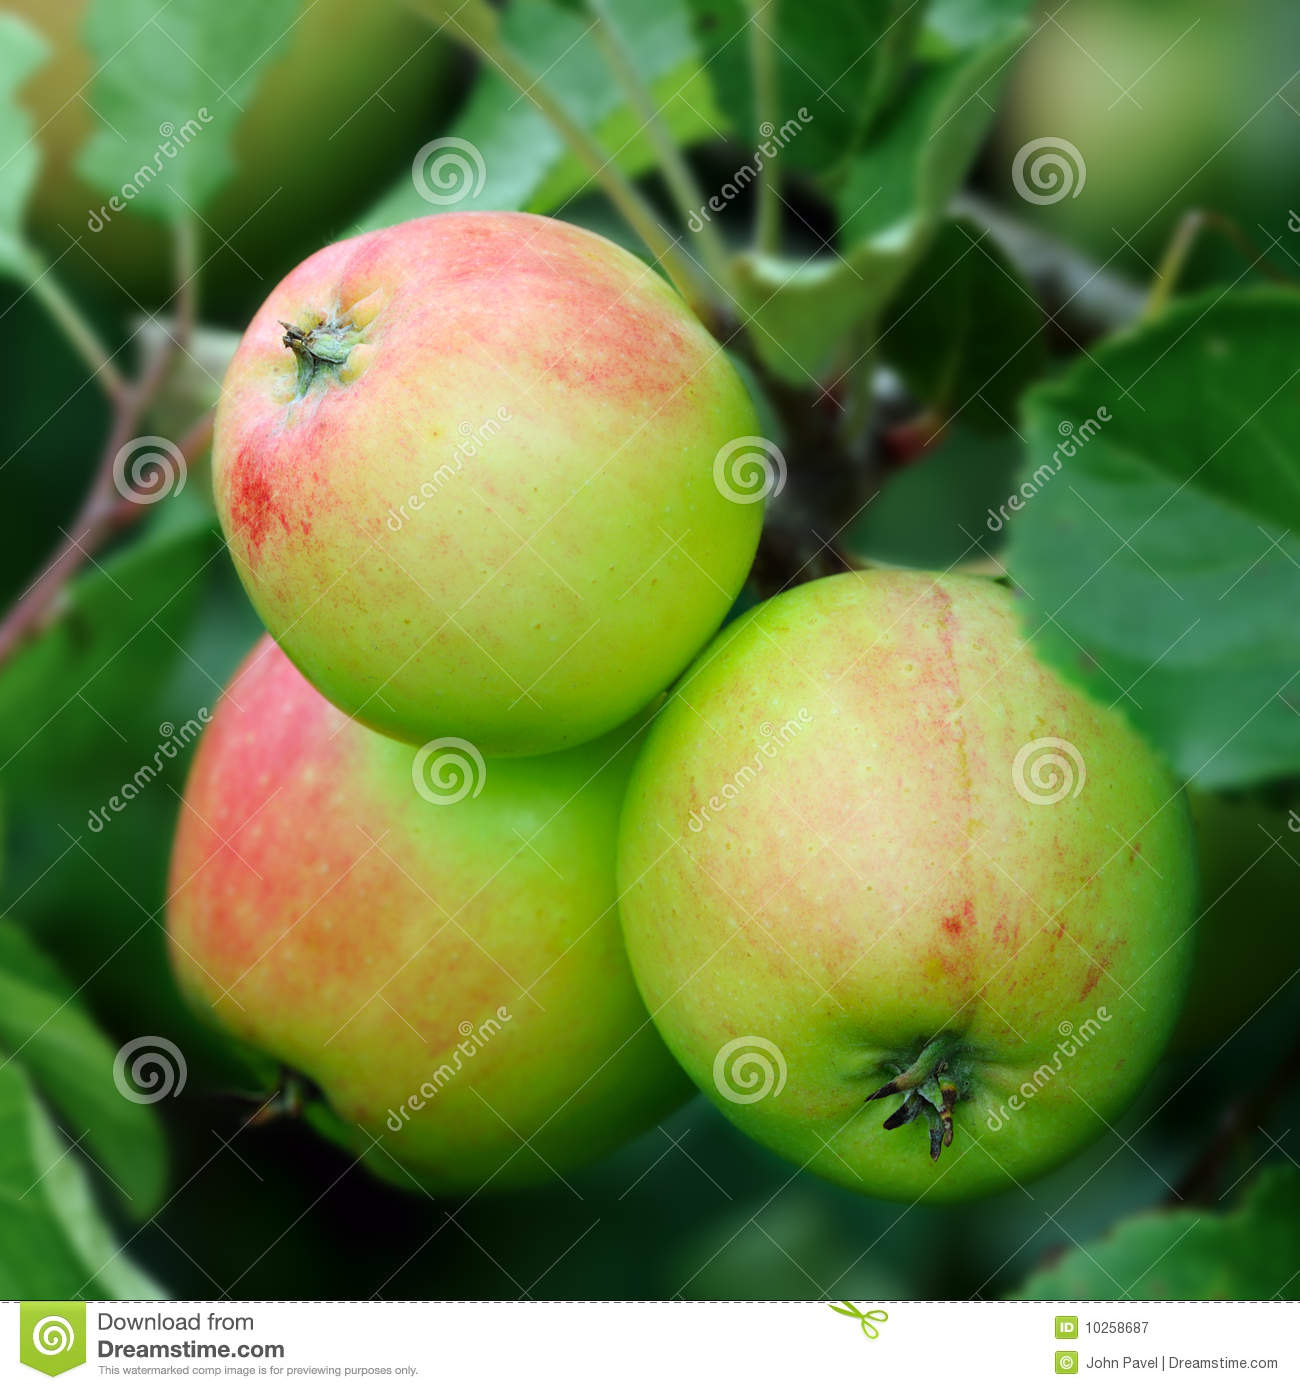 Green English apples, with a red blush, ripening